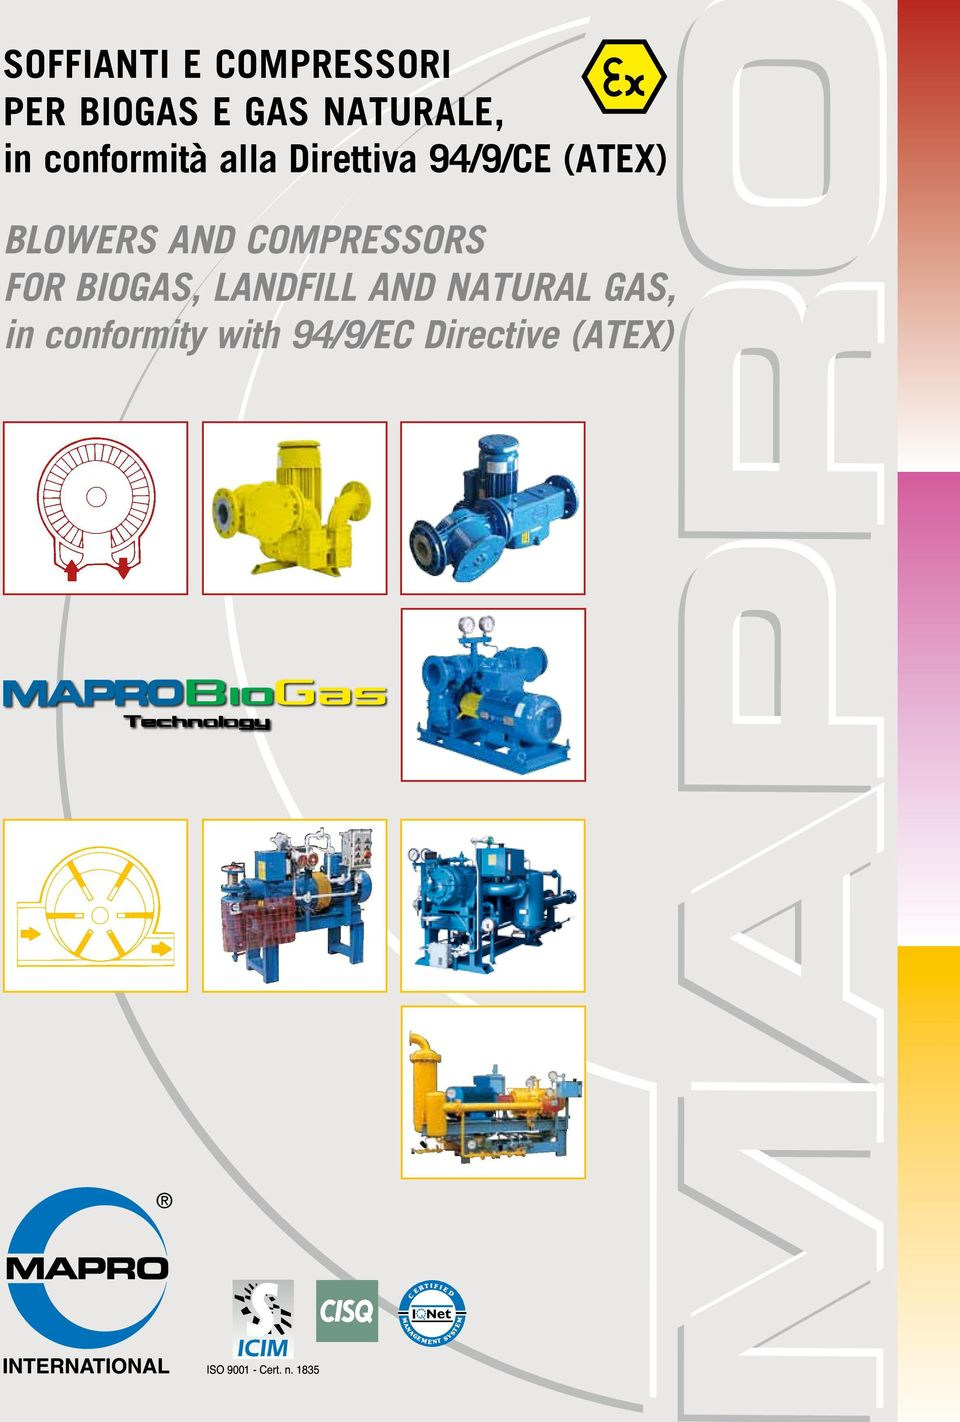 (ATEX) BLOWERS AND COMPRESSORS FOR BIOGAS,